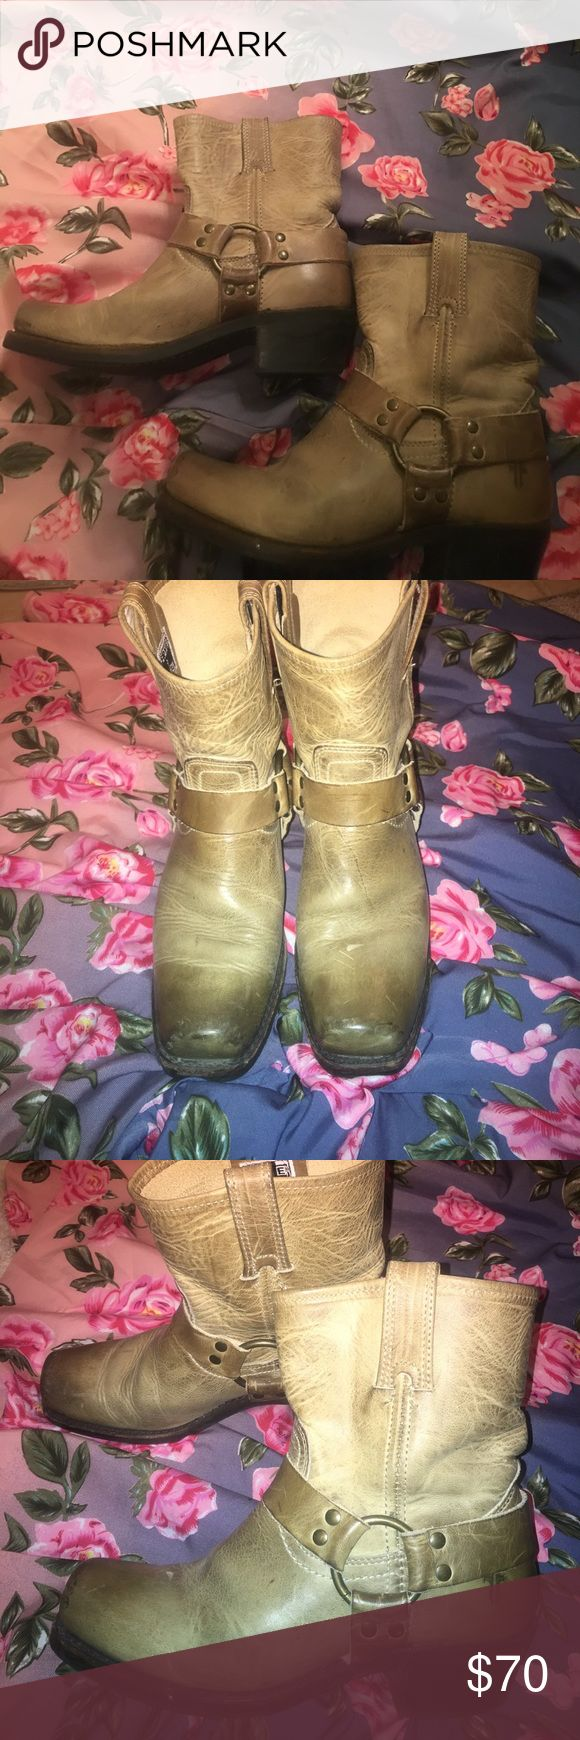 Frye beige boots These were worn a handful of times but still in great condition. Added a pic of soles to show there is minimal wear. Frye Shoes Heeled Boots